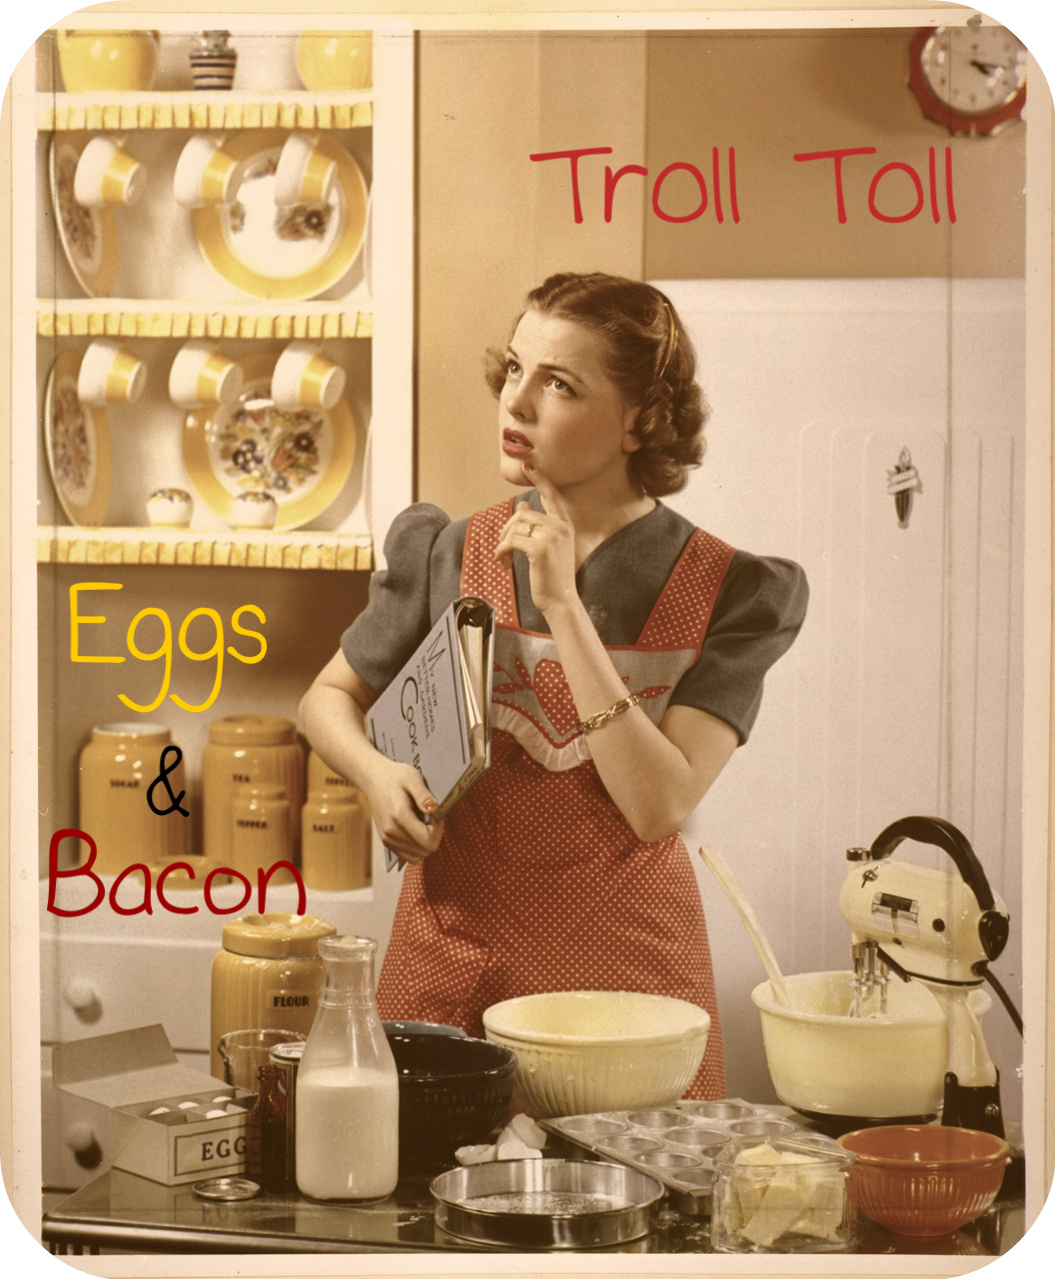 Eggs & Bacon Promo Cover